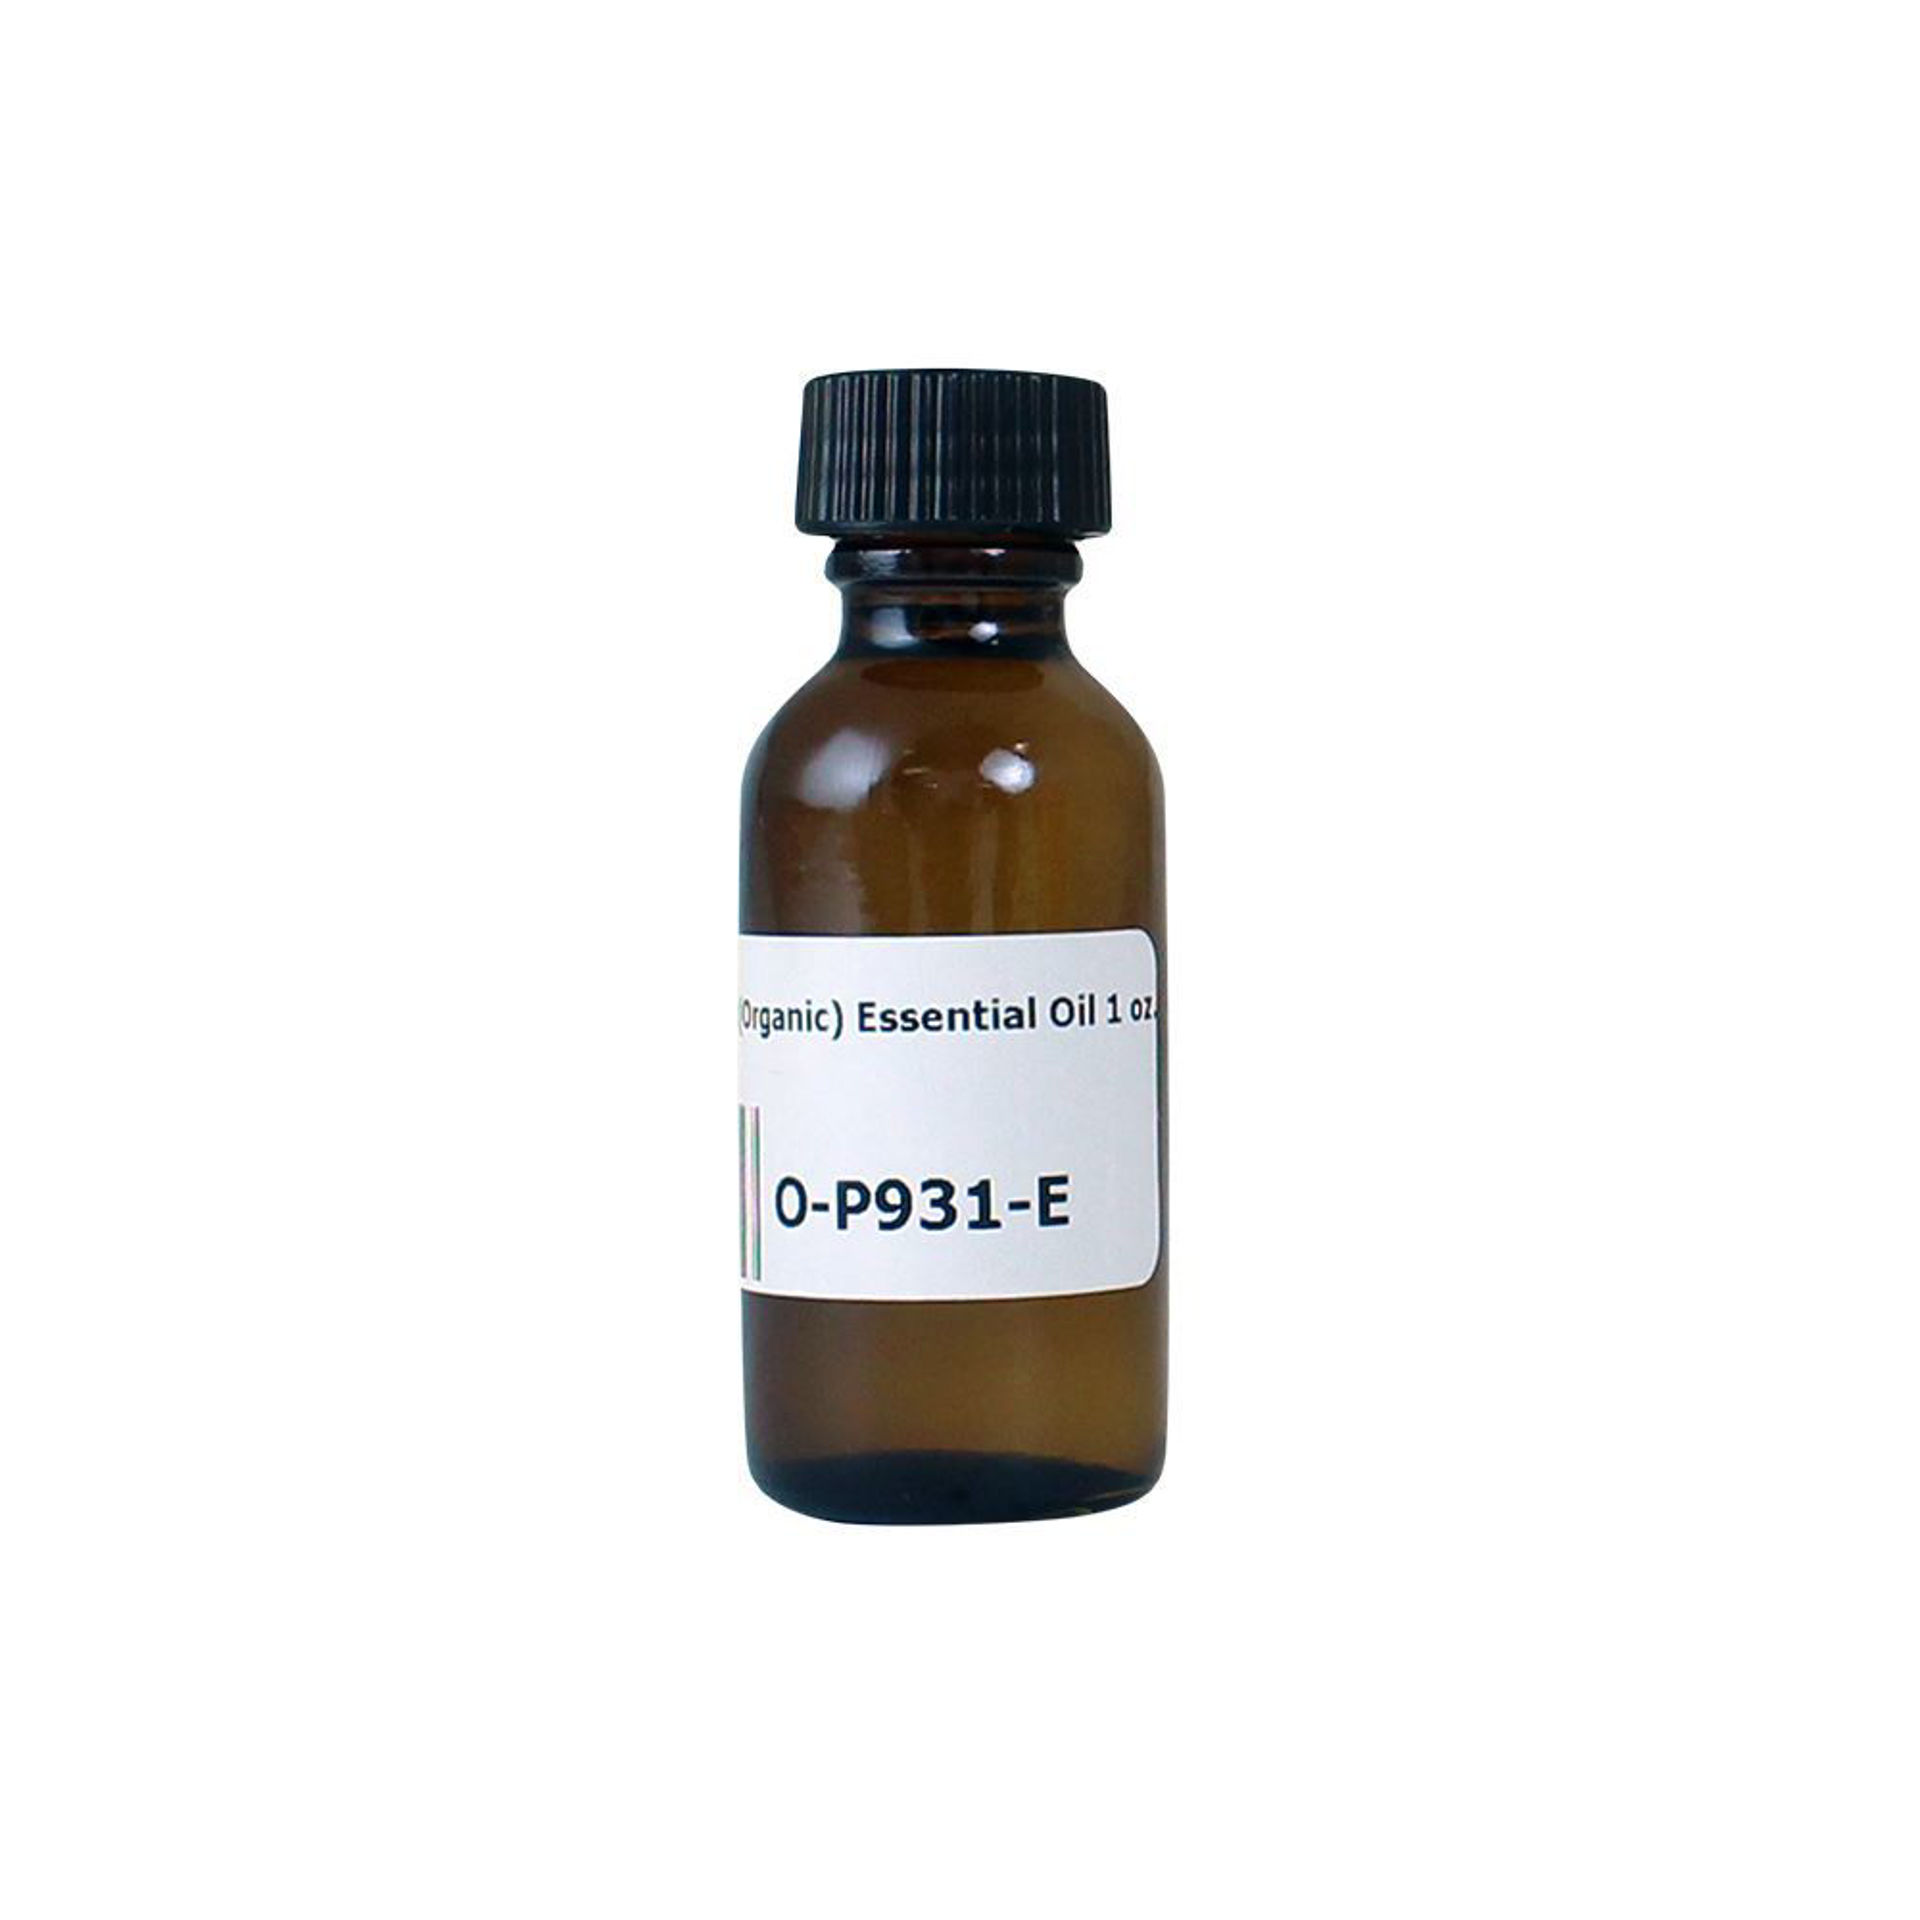 Picture of Peppermint (Organic) Essential Oil 1 oz.